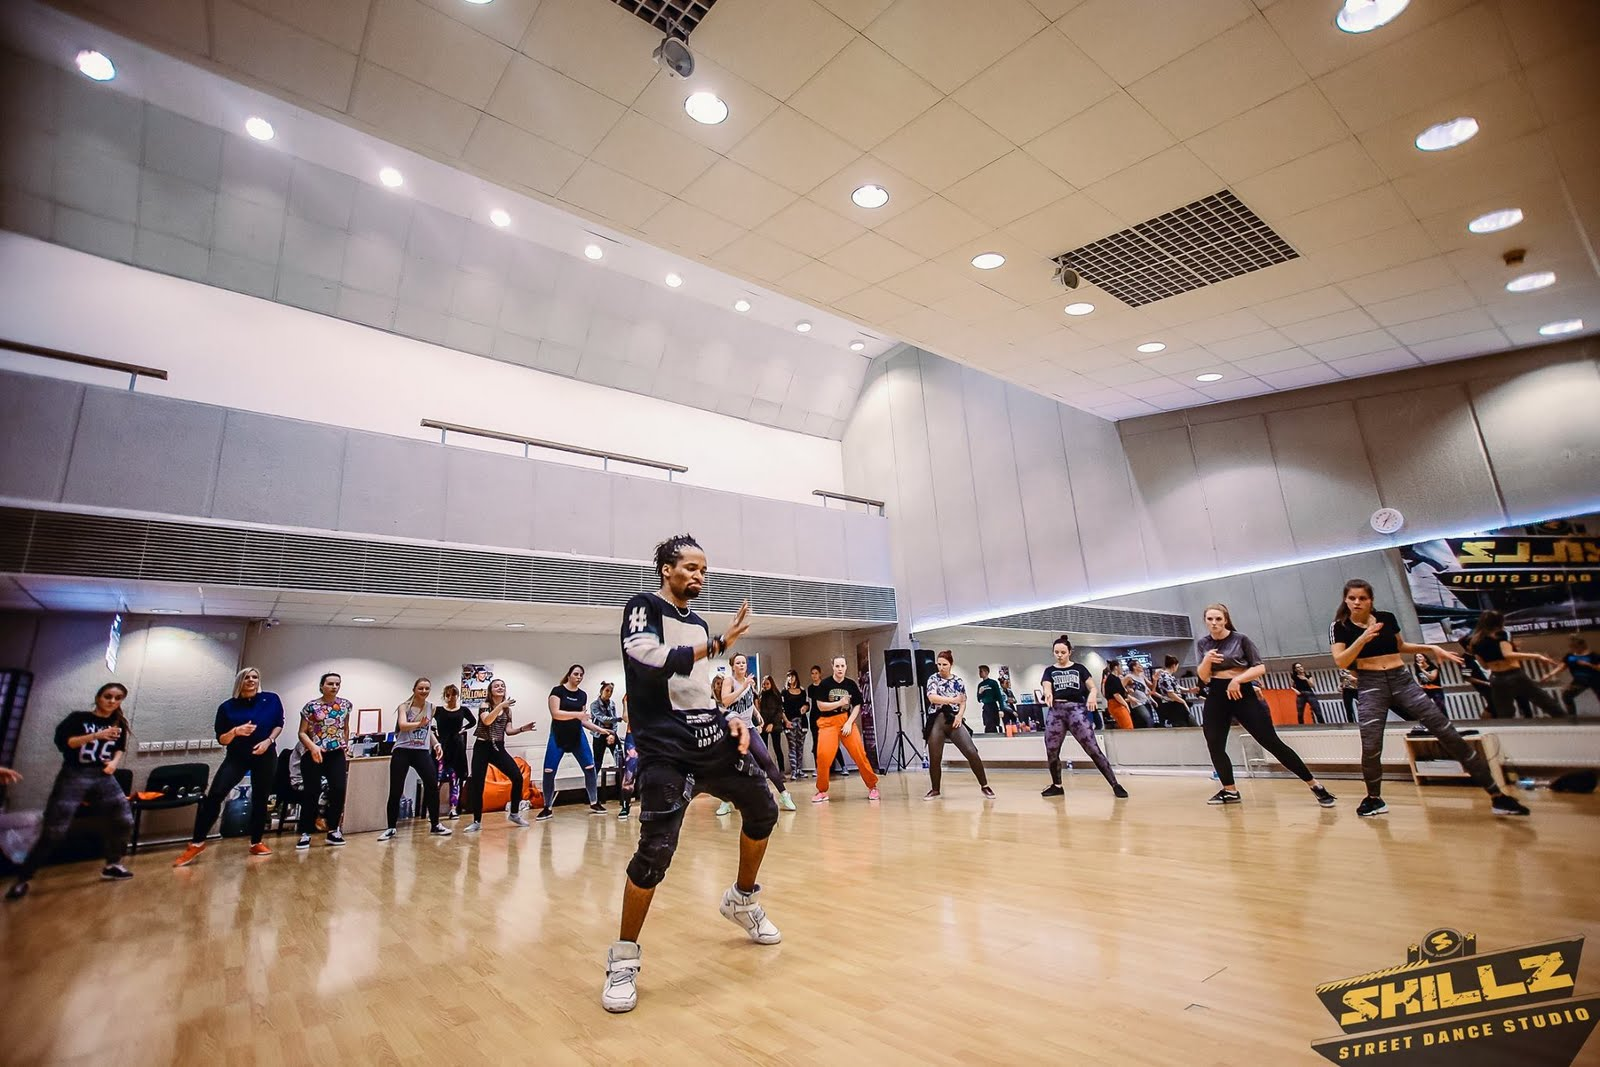 Dancehall workshop with Jiggy (France) - 49.jpg